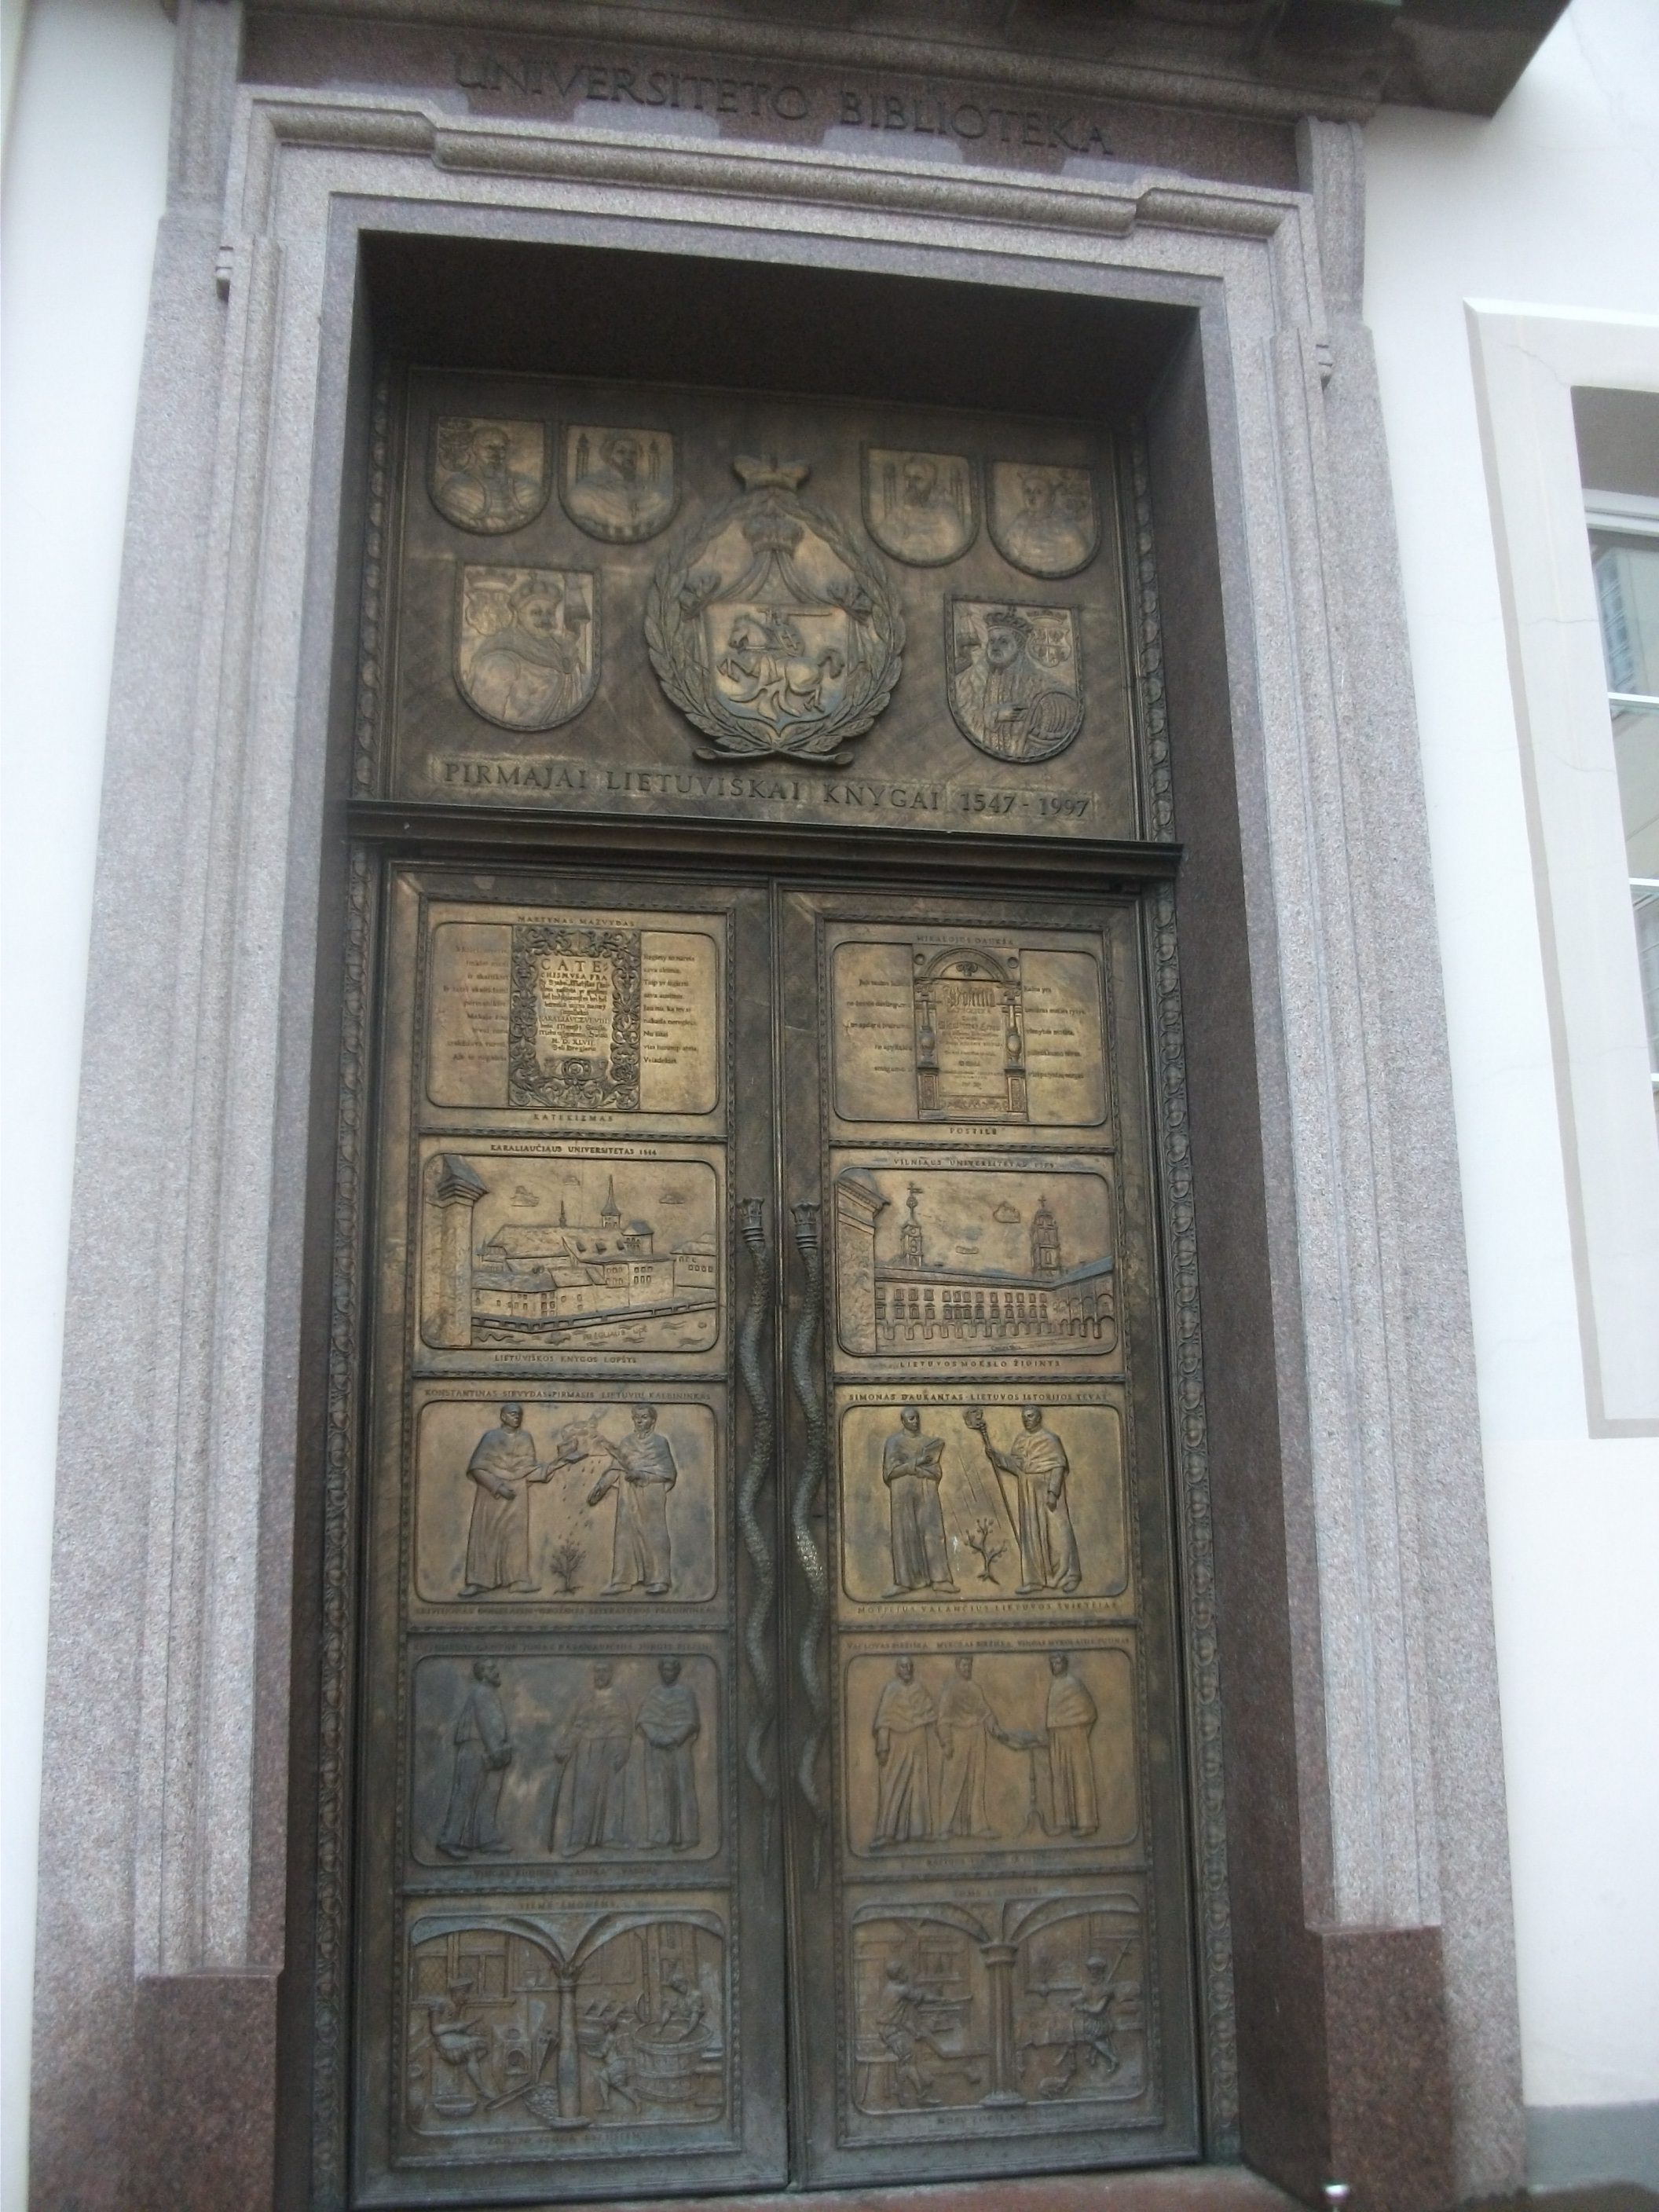 Vilnius University: The Central Library door